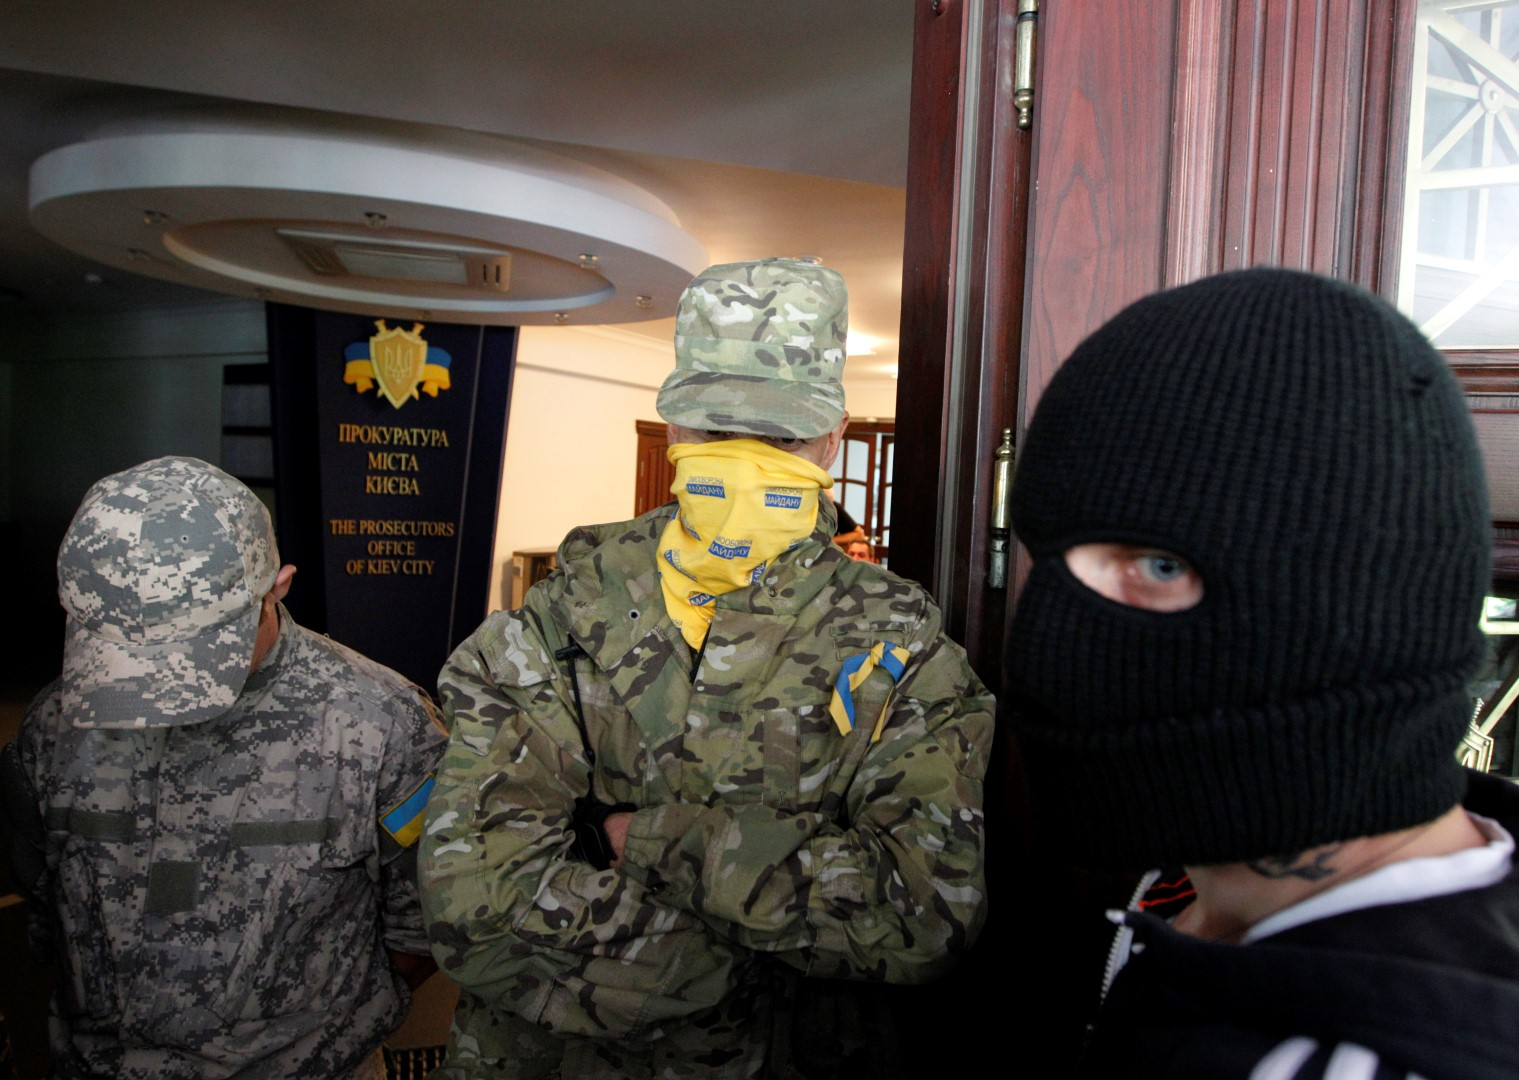 Maidan self-defence activists prevent a member of the Ukrainian far-right radical group Right Sector (R) entering the Prosecutor's Office in Kiev June 13, 2014. REUTERS/Valentyn Ogirenko (UKRAINE - Tags: POLITICS CIVIL UNREST) - GM1EA6D1KE401